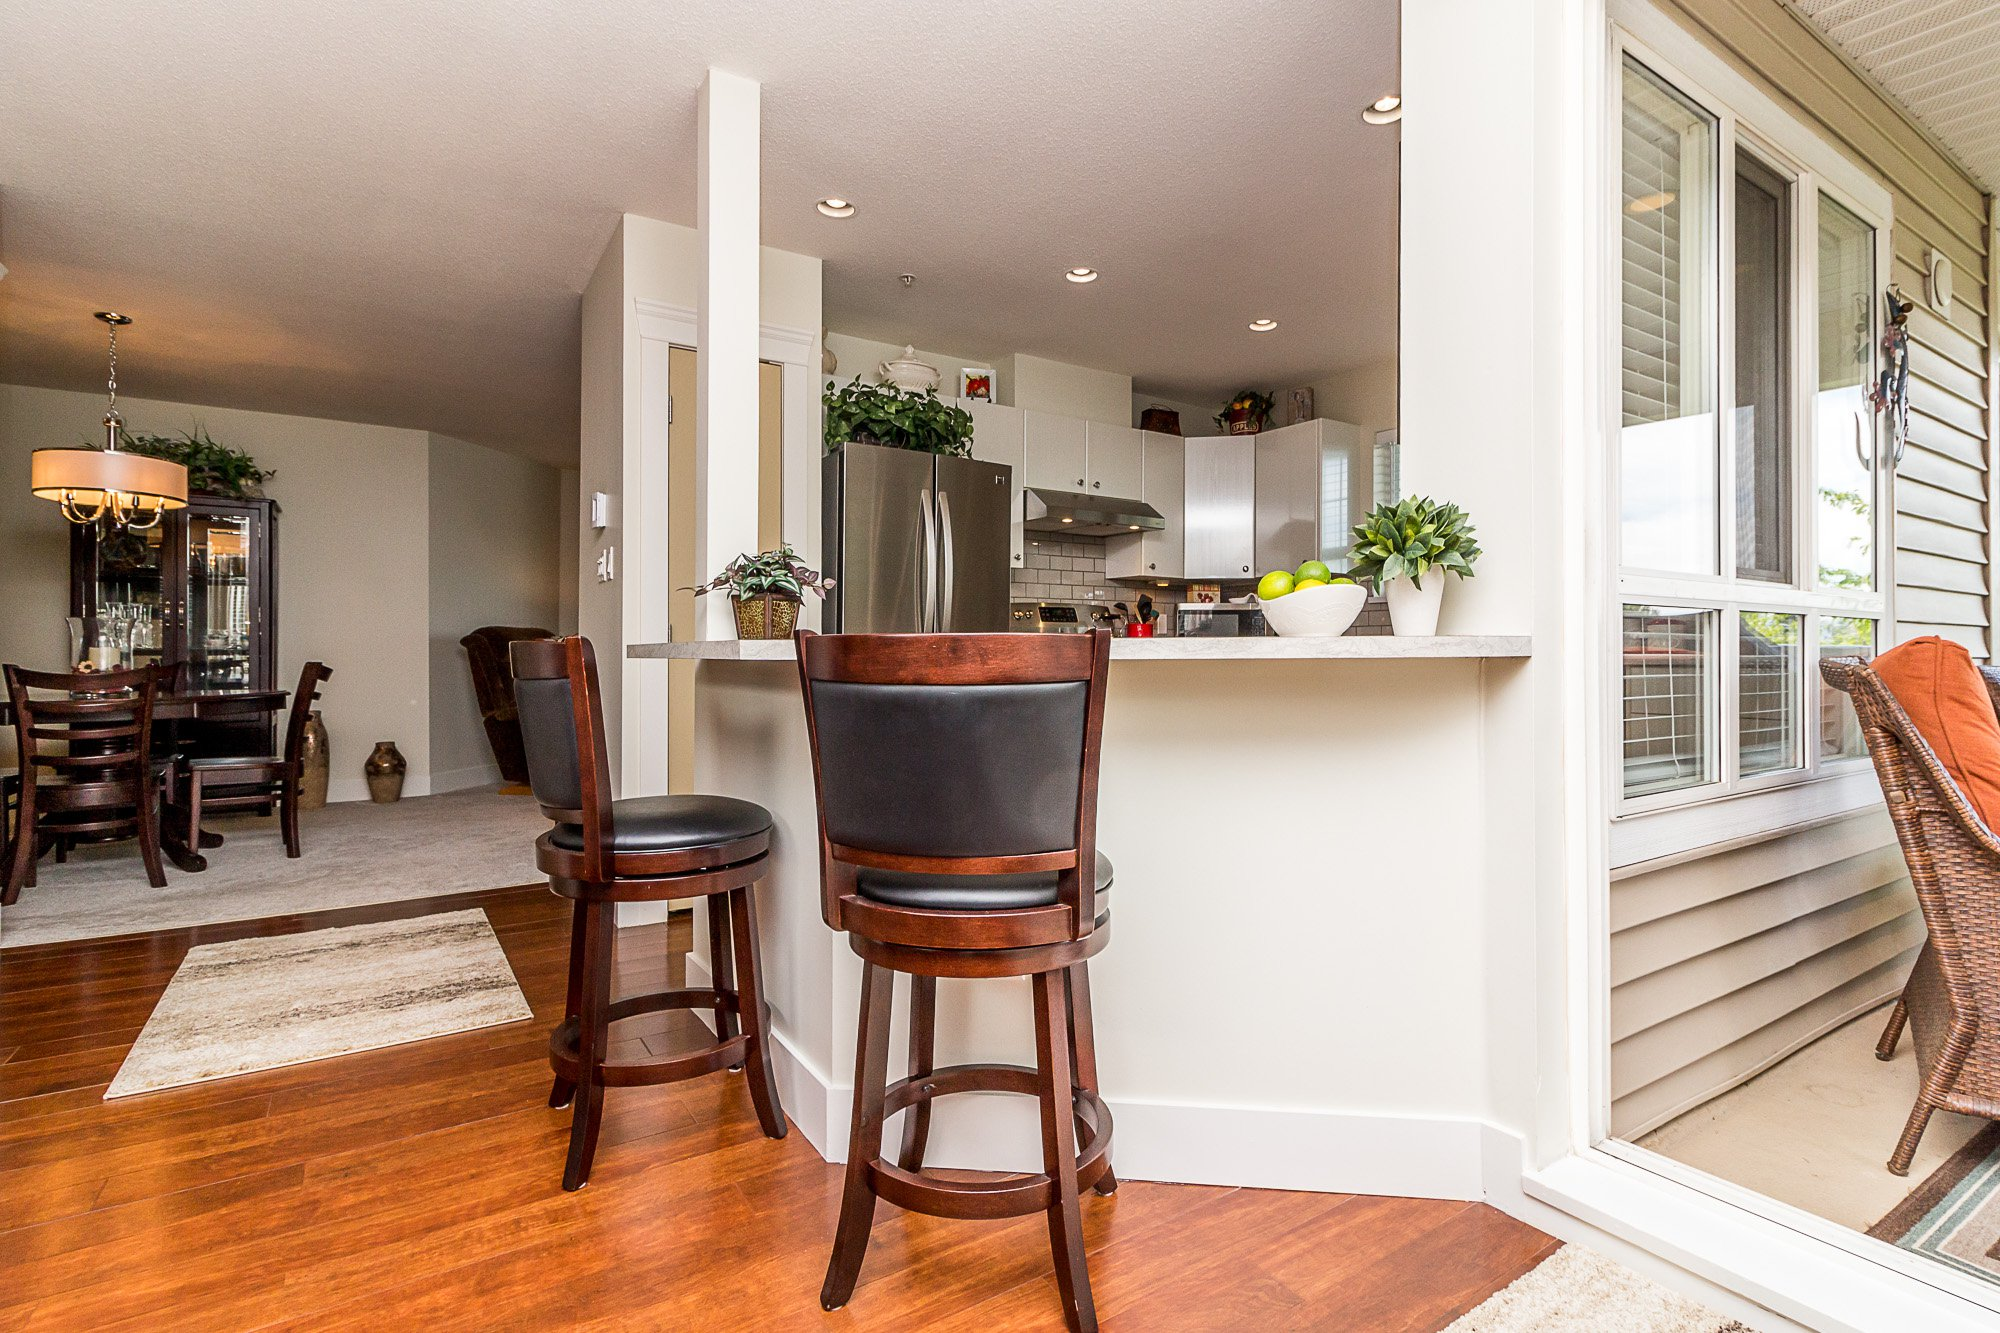 """Photo 11: Photos: 412 22022 49 Avenue in Langley: Murrayville Condo for sale in """"Murray Green"""" : MLS®# R2266359"""